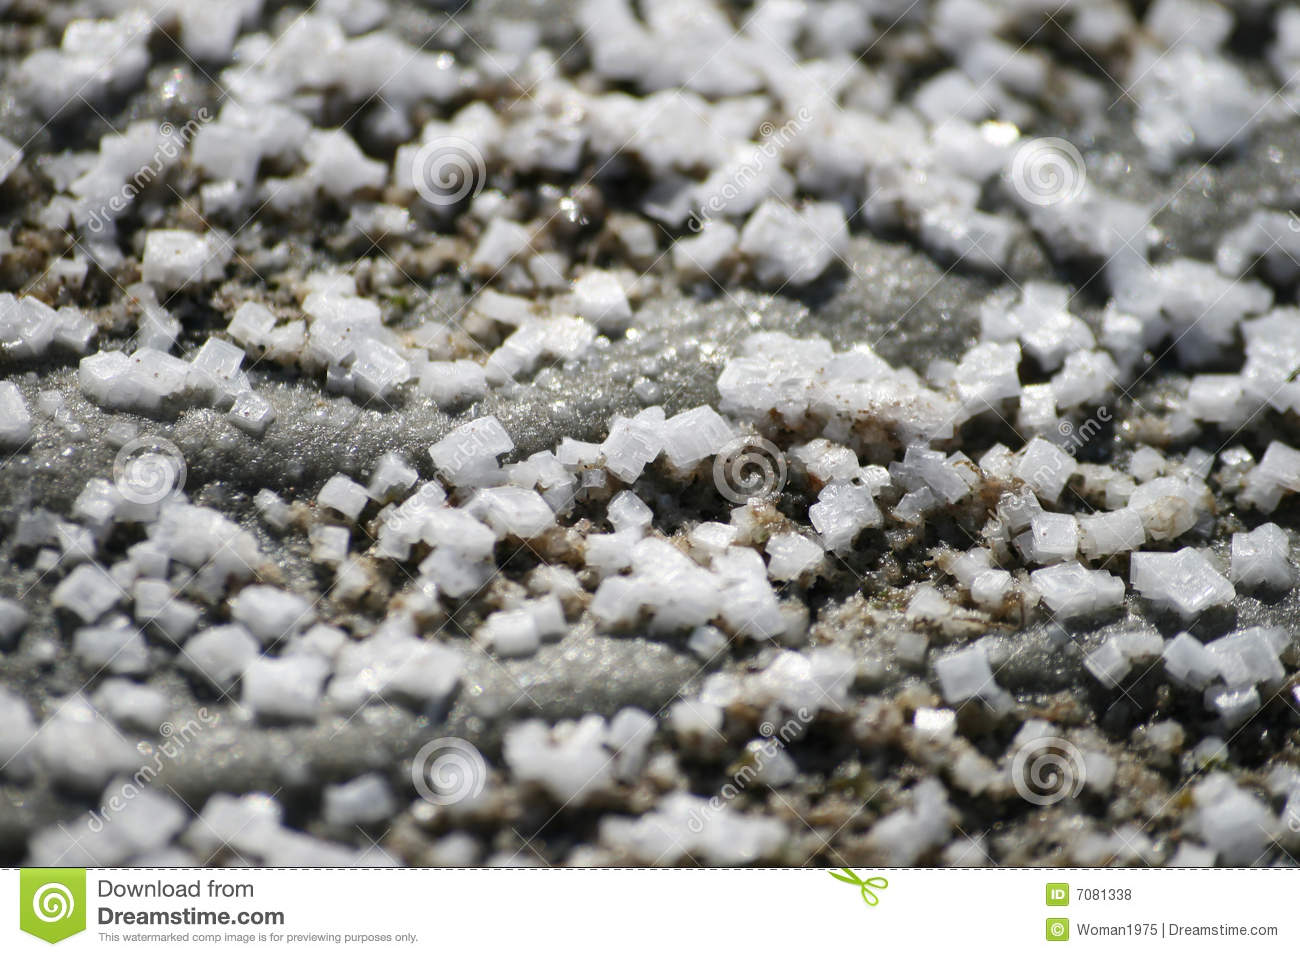 Salt Crystals On Grey Sand Royalty Free Stock Photos   Image  7081338